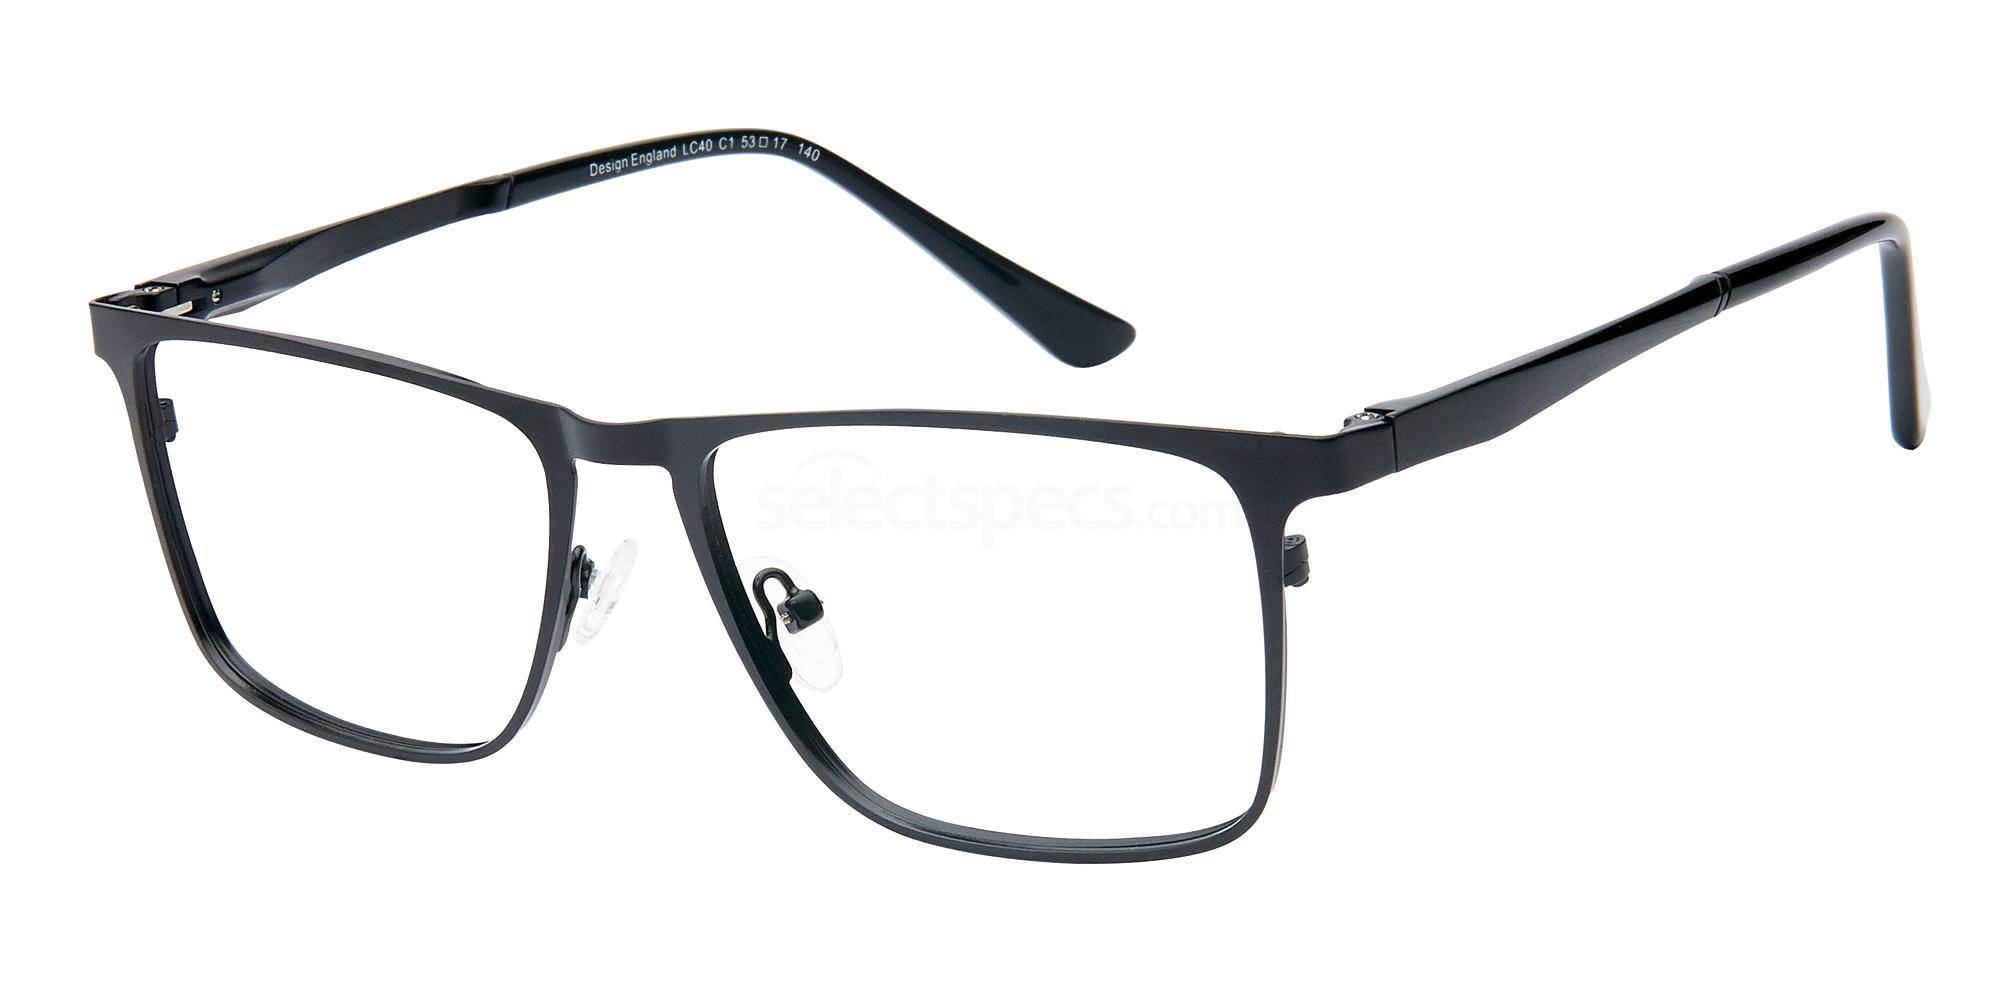 C1 LC40 with Clip On Glasses, London Club